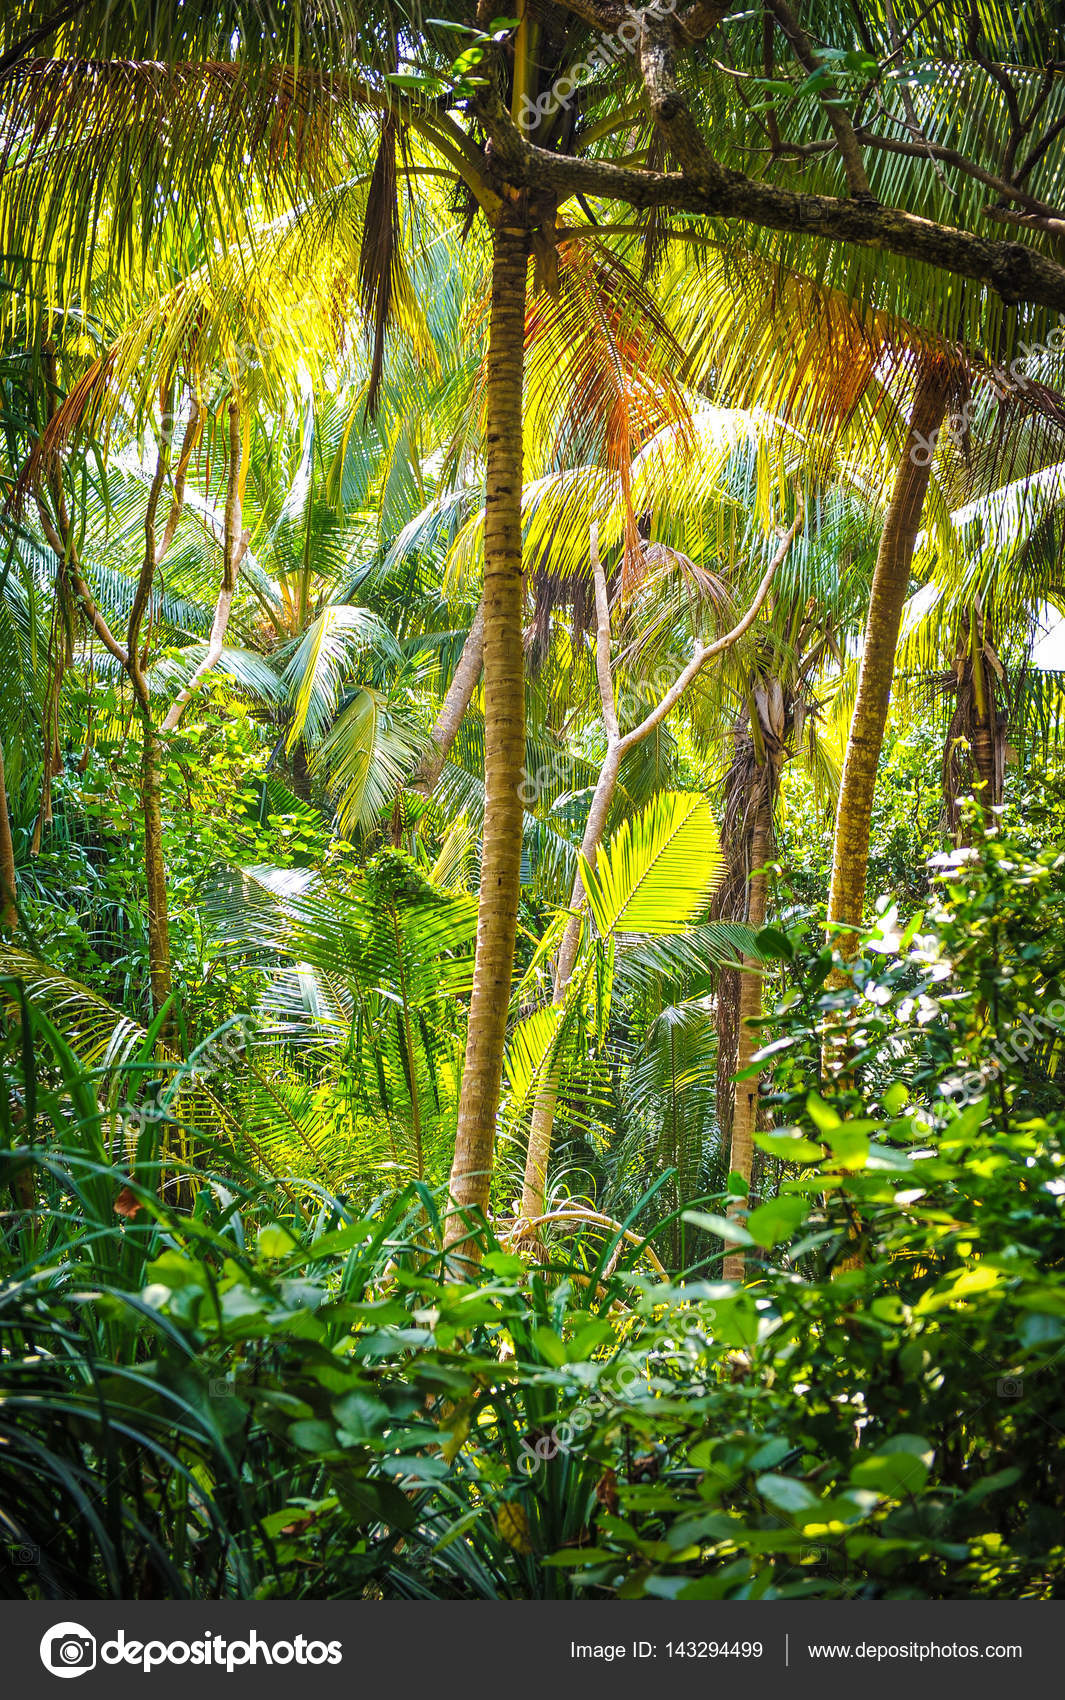 Palm Leaves Tropical Forest On The Island In Indian Ocean Beautiful Landscape Of Humid Tropical Jungle Picture Of A Tropical Forest Background Stock Photo C Iancucristi 143294499 All illustrations are free to download! palm leaves tropical forest on the island in indian ocean beautiful landscape of humid tropical jungle picture of a tropical forest background stock photo c iancucristi 143294499